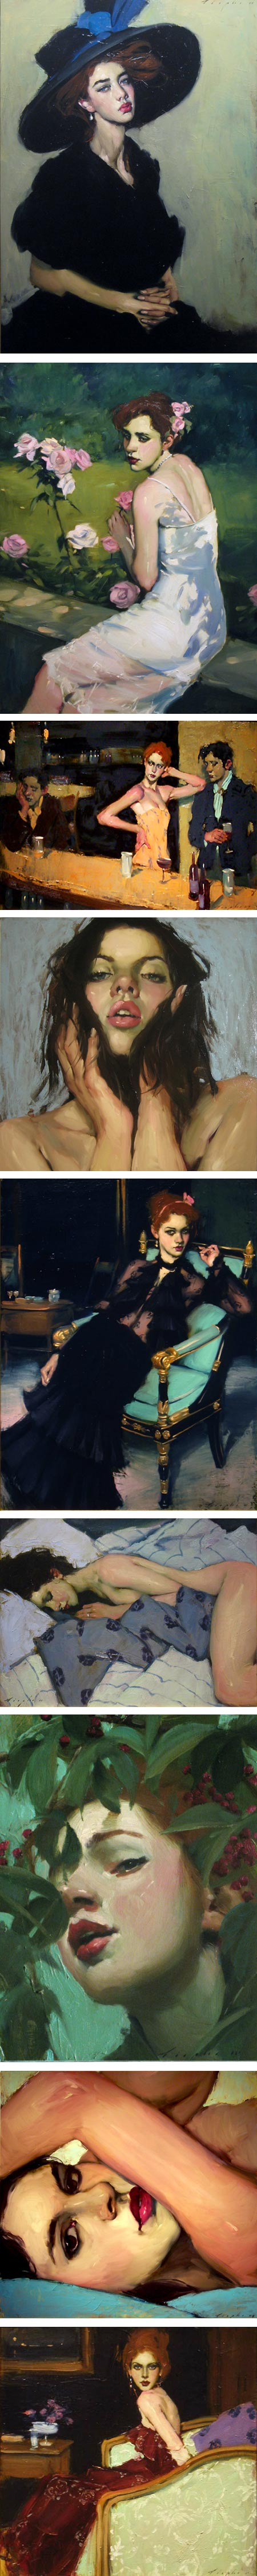 Malcolm Liepke